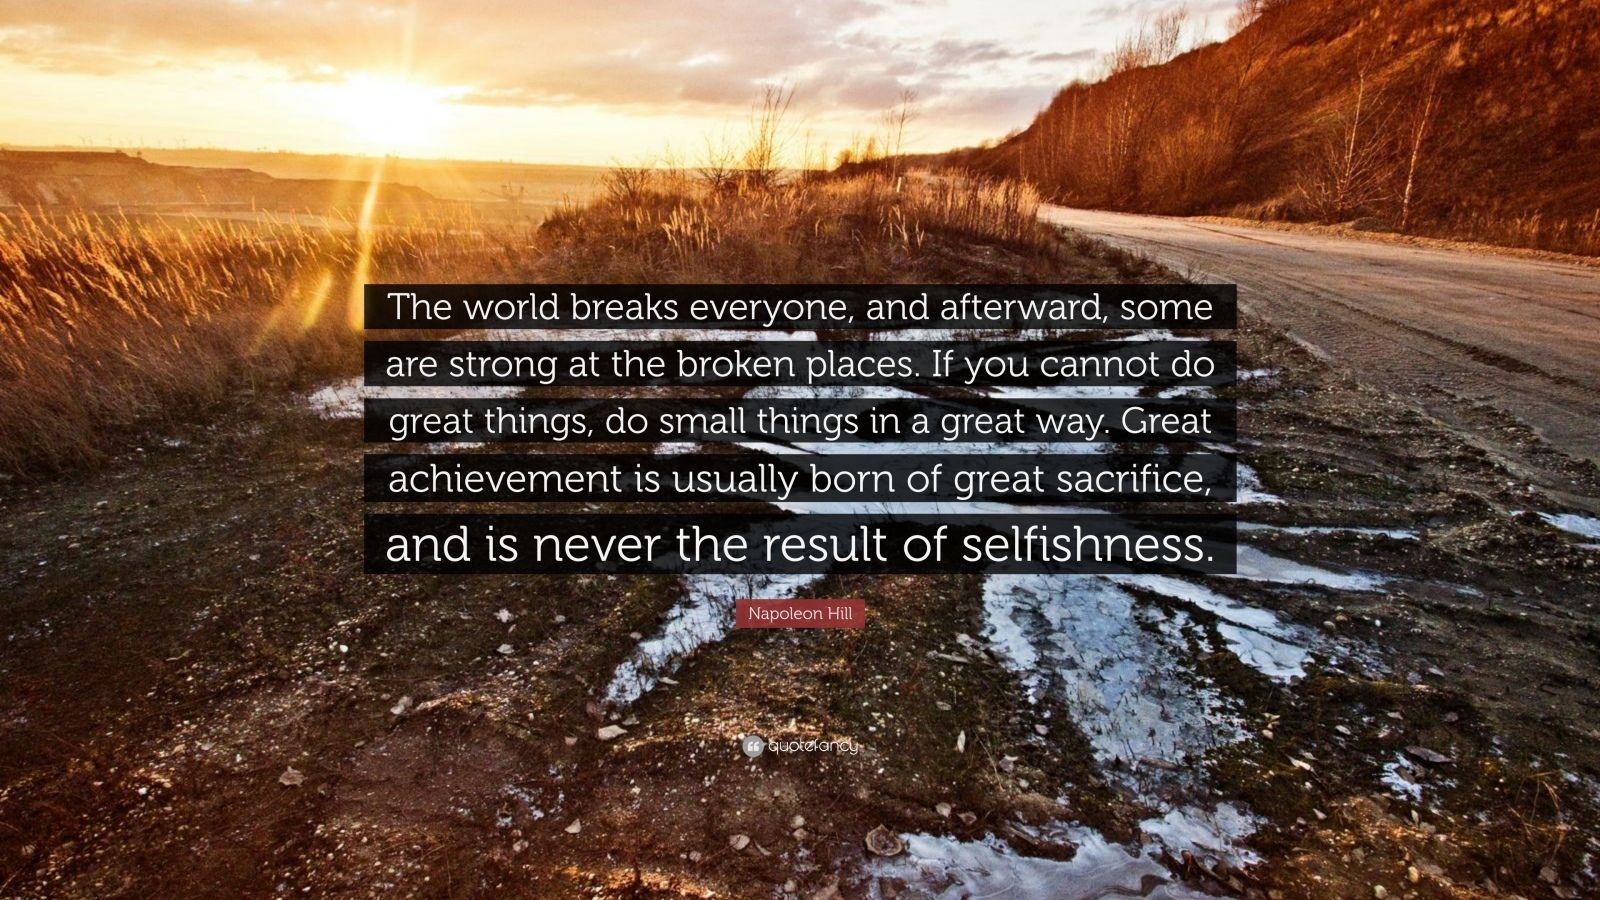 """Napoleon Hill Quote: """"The world breaks everyone, and afterward, some are strong at the broken places. If you cannot do great things, do small things in a great way. Great achievement is usually born of great sacrifice, and is never the result of selfishness."""""""